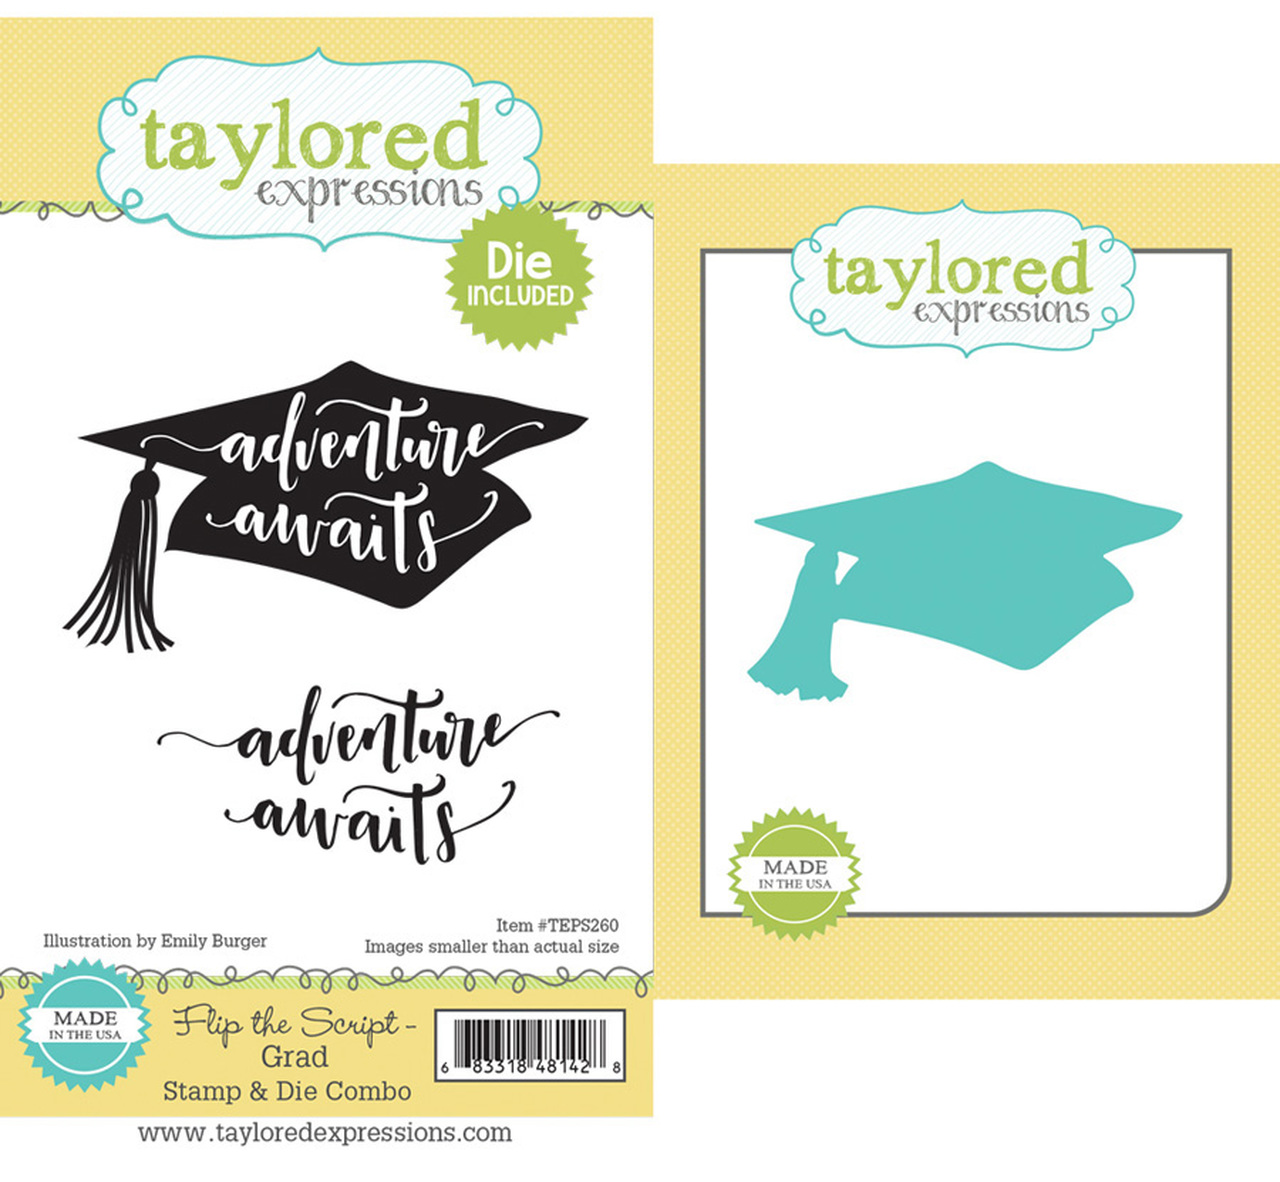 Taylored Expression - Flip the Script - Grad Stamp & Die Combo